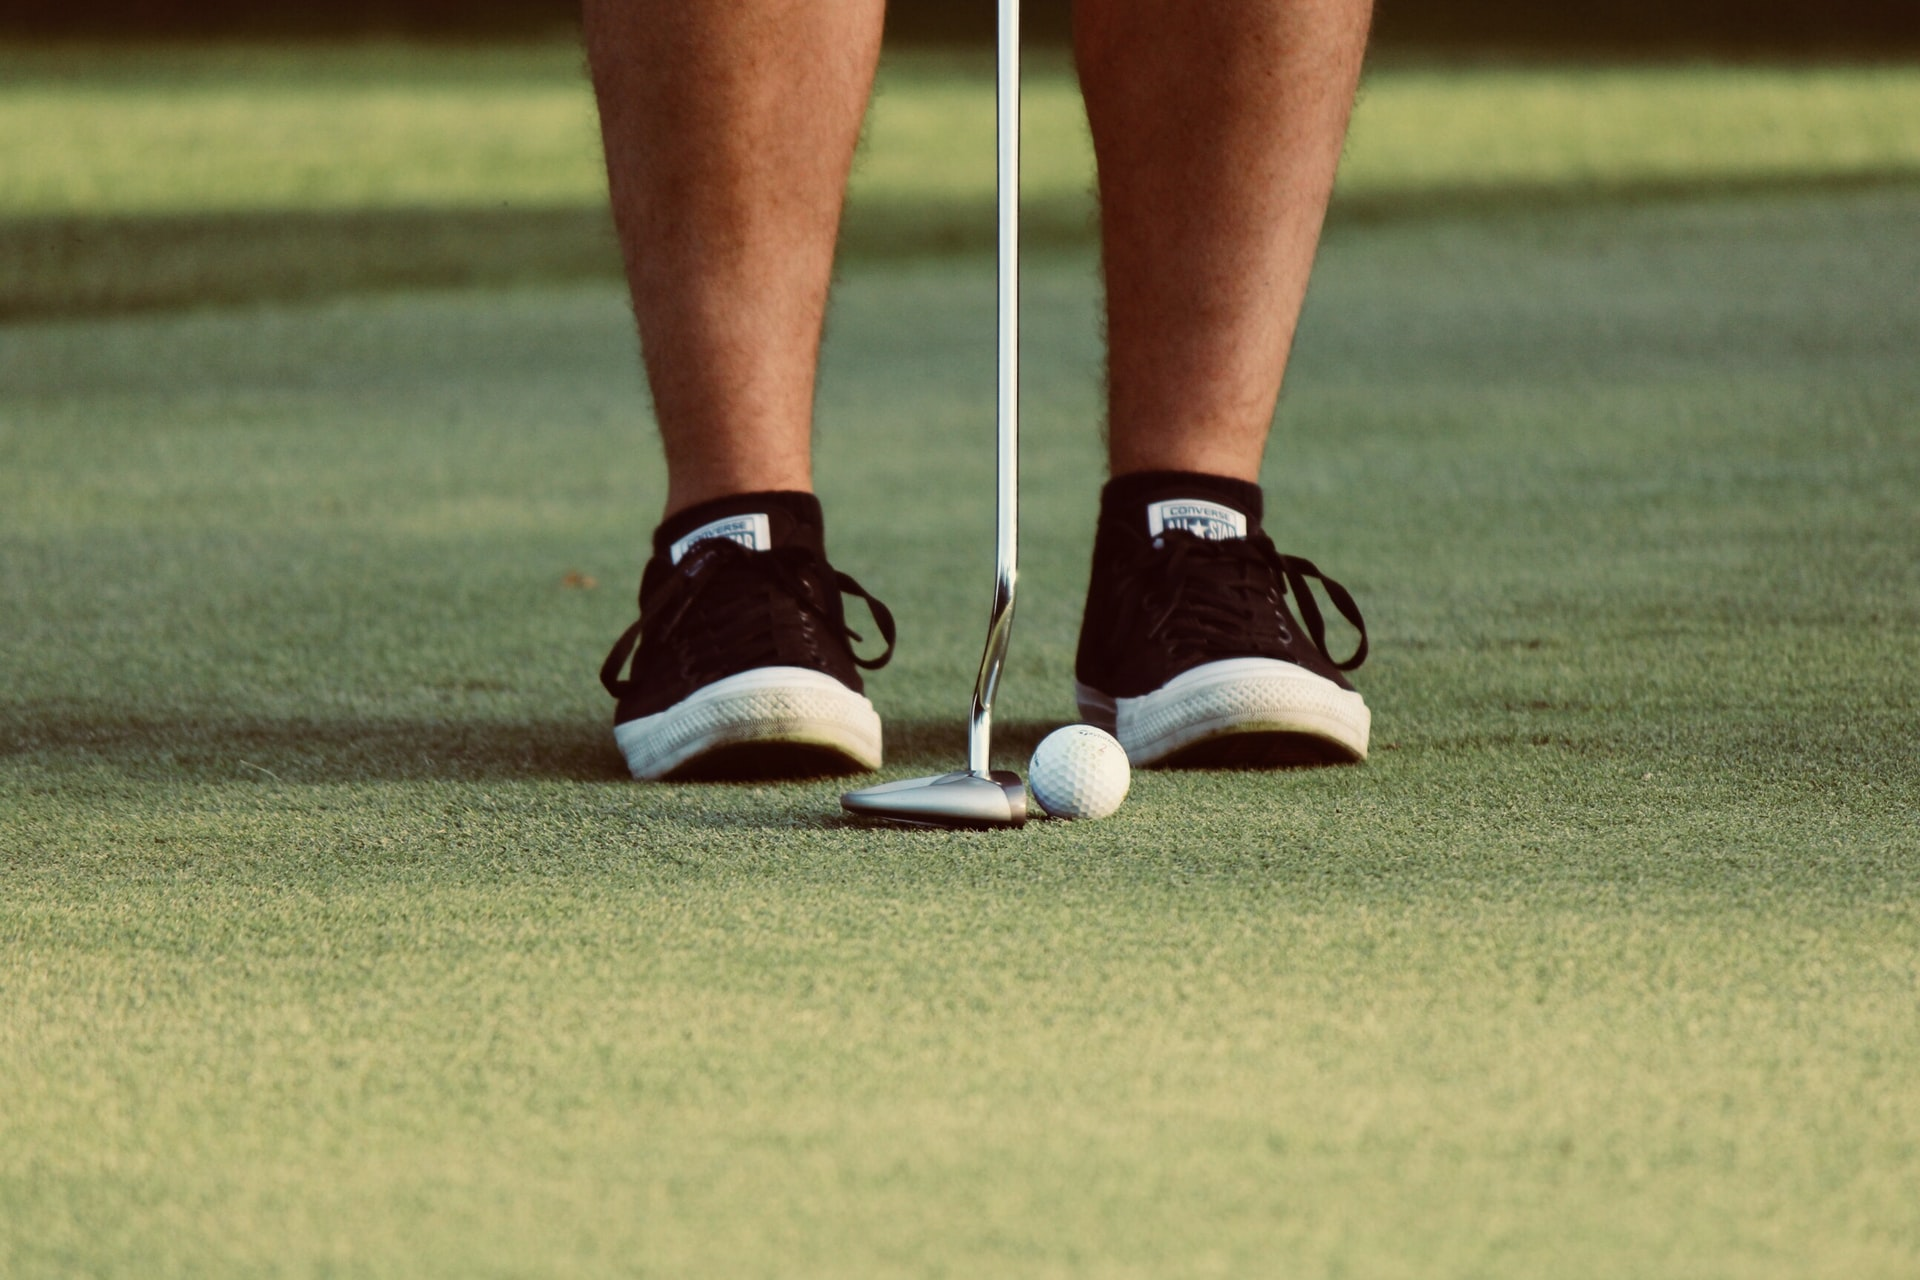 Chipping Putting Golf Course Header Image